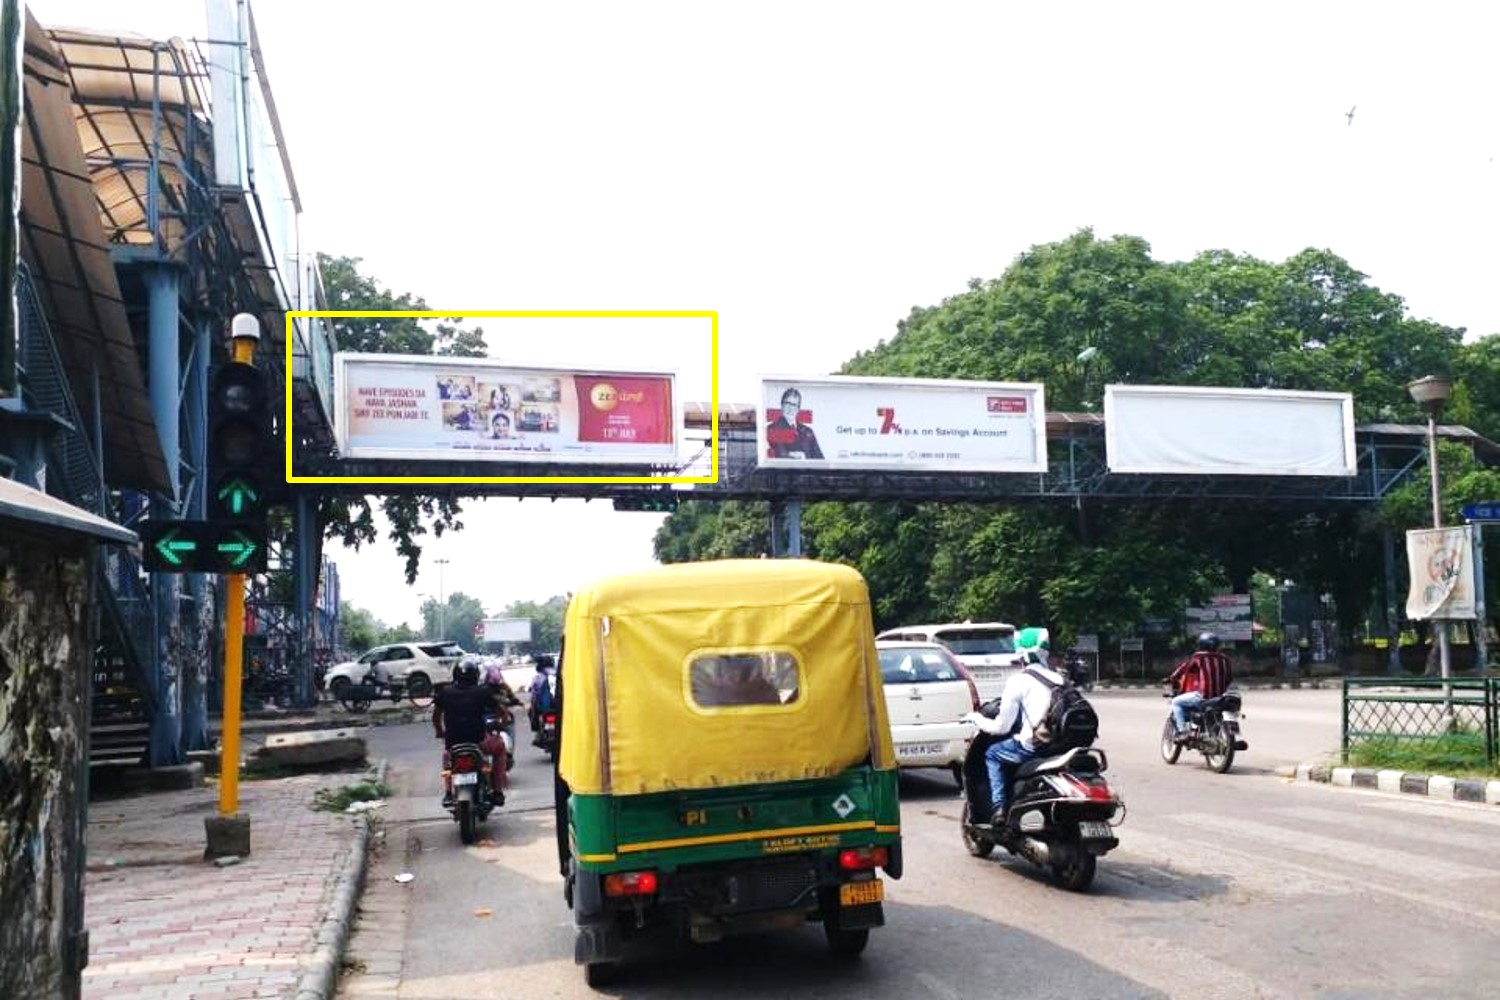 Gantry Advertising at Phase - 7 Market Traffic Lights (Traffic Facing Phase - 8), Mohali, Punjab